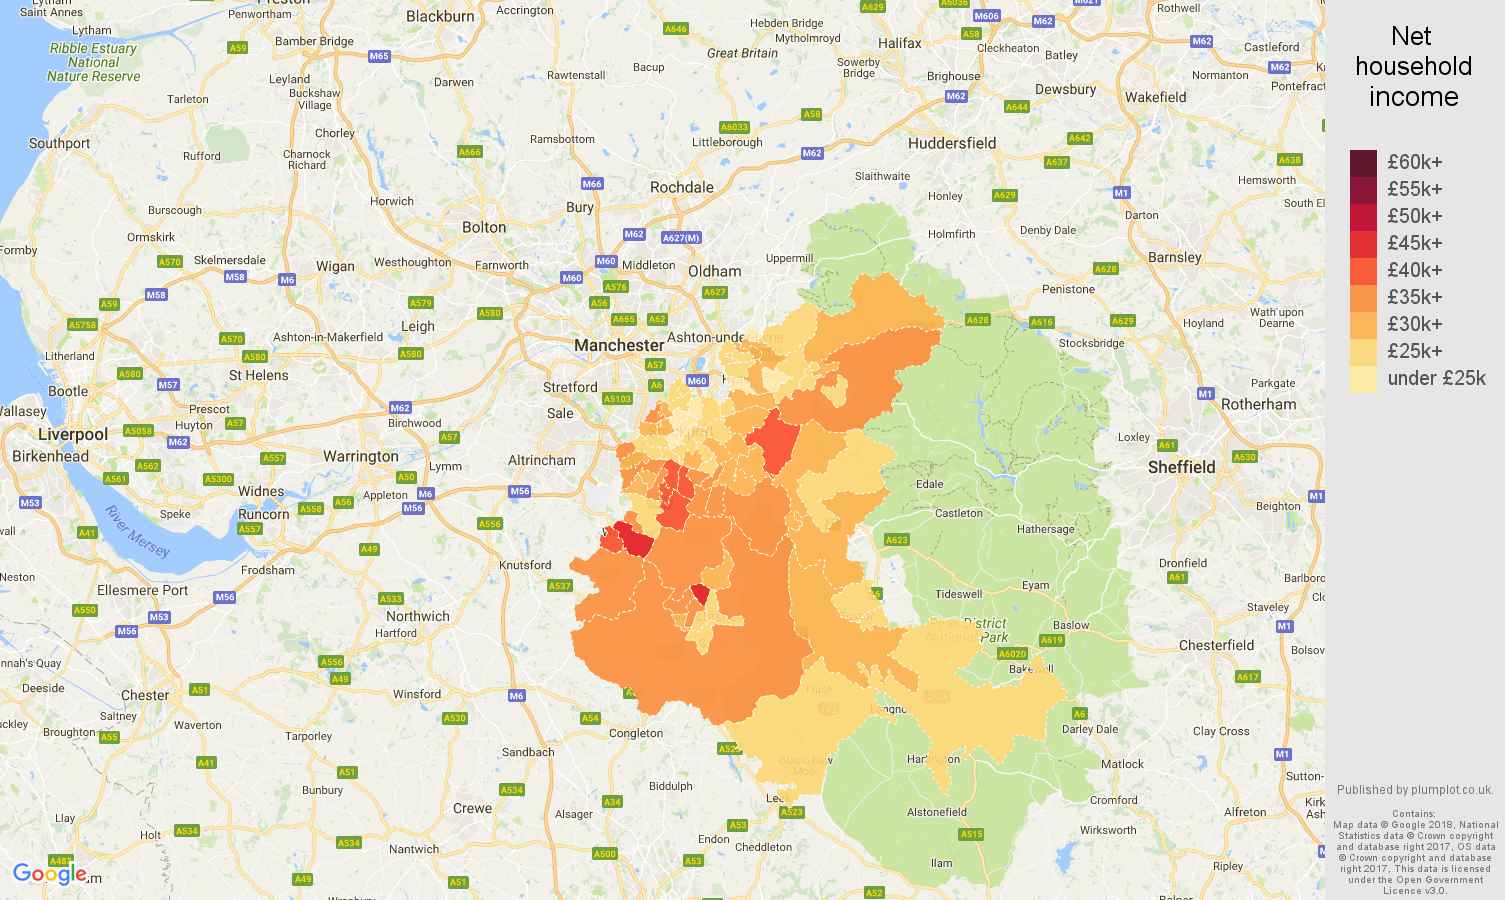 Stockport net household income map